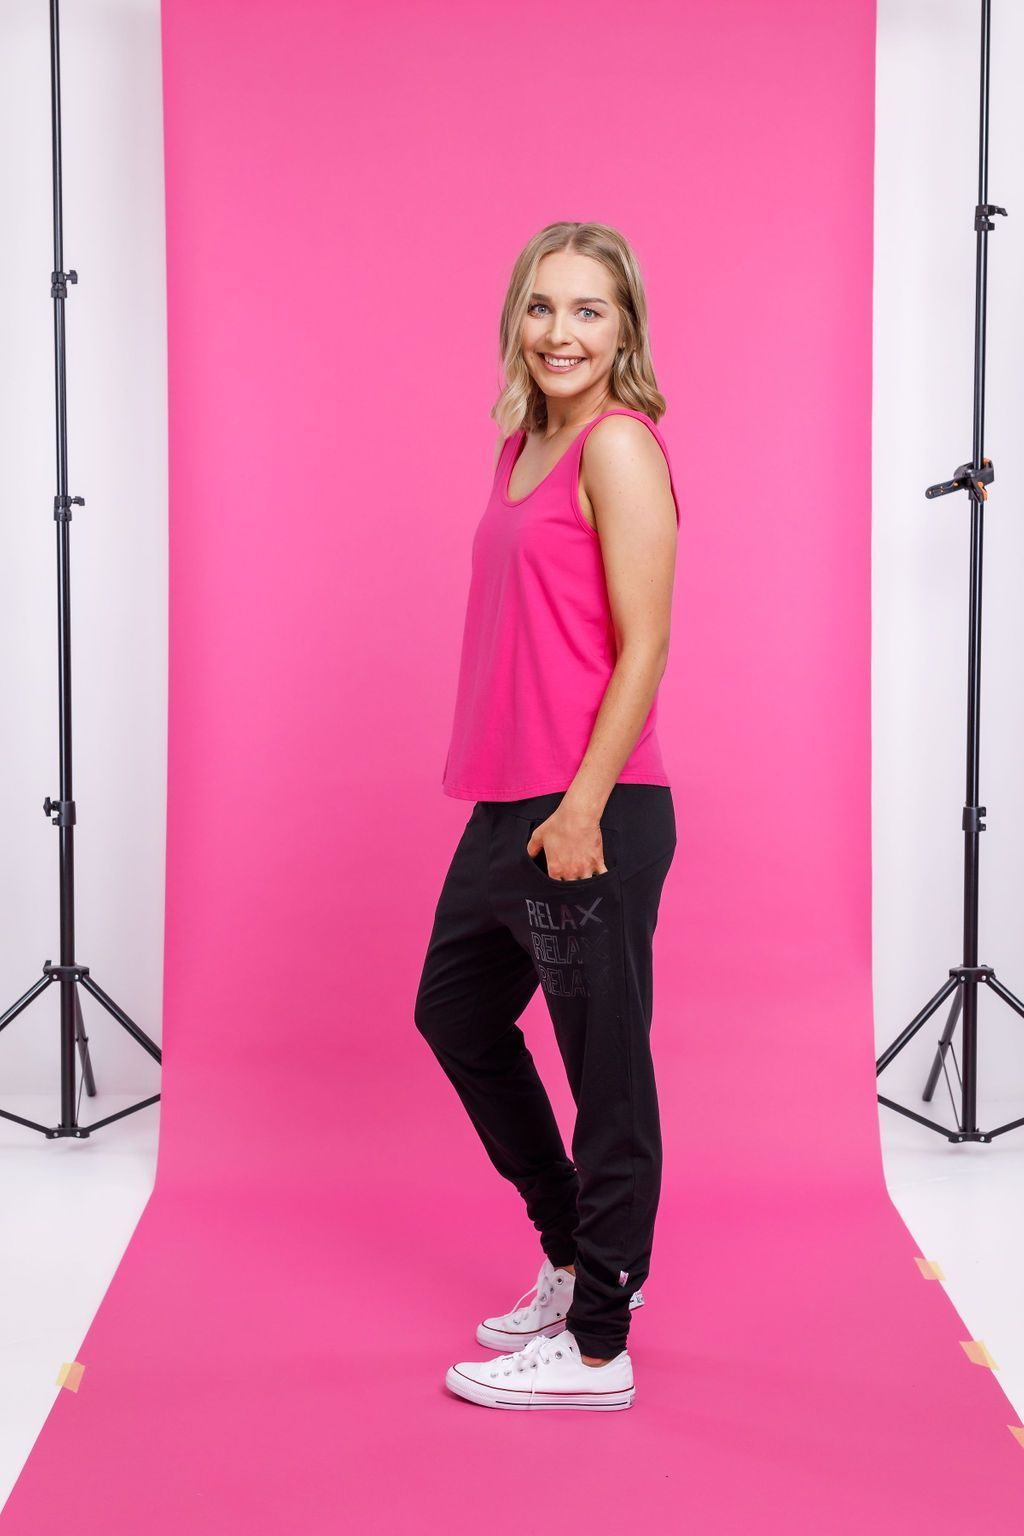 APARTMENT PANTS RELAX RELAX RELAX - APARTMENT PANTS RELAX RELAX RELAX - Ebony Boutique NZ